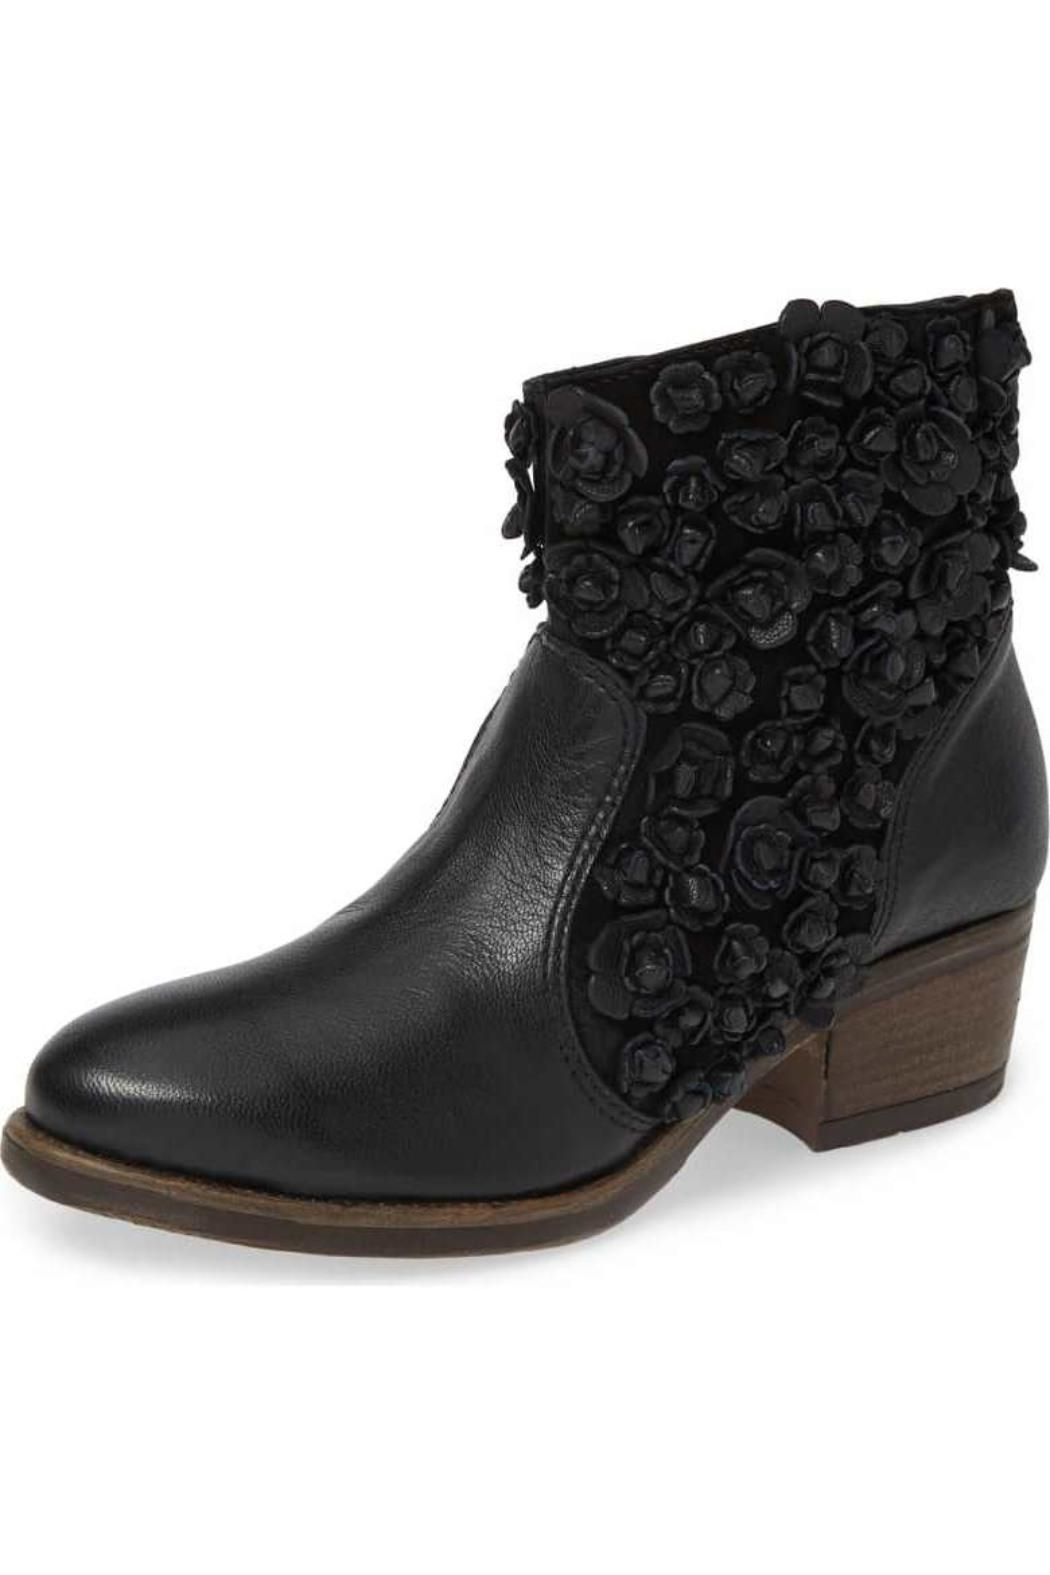 Sheridan Mia Sapphire Floral Bootie - Front Full Image